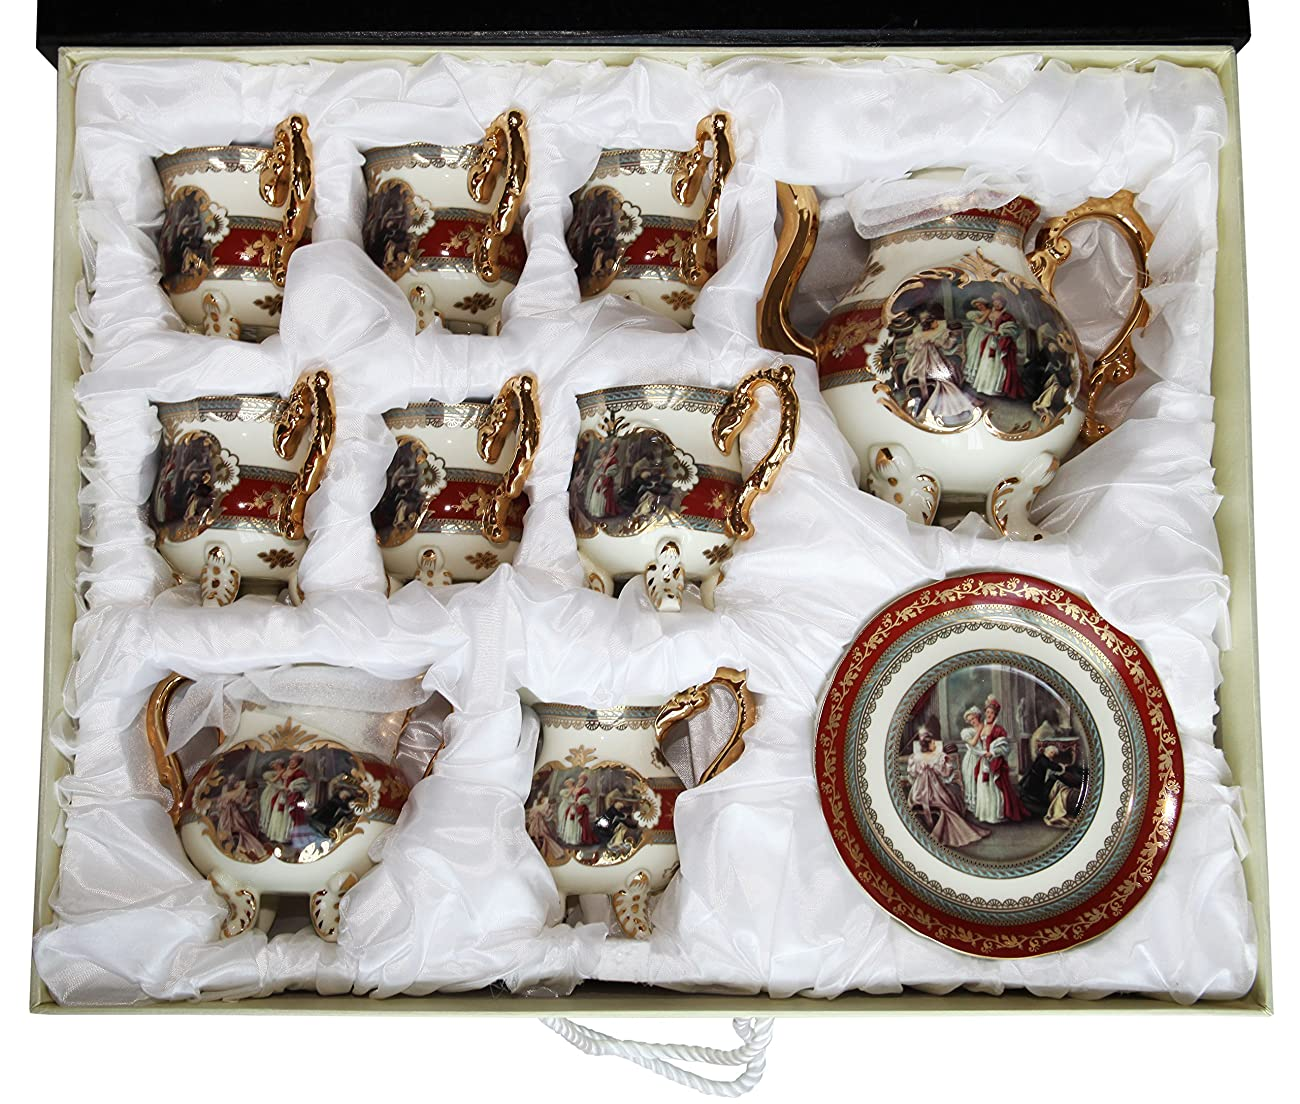 Royal Porcelain 15-Piece Antique RED Vintage Dining Tea Cup Set, Service for 6, Handmade & Hand-Painted, 24K Gold Bone China Tableware 6